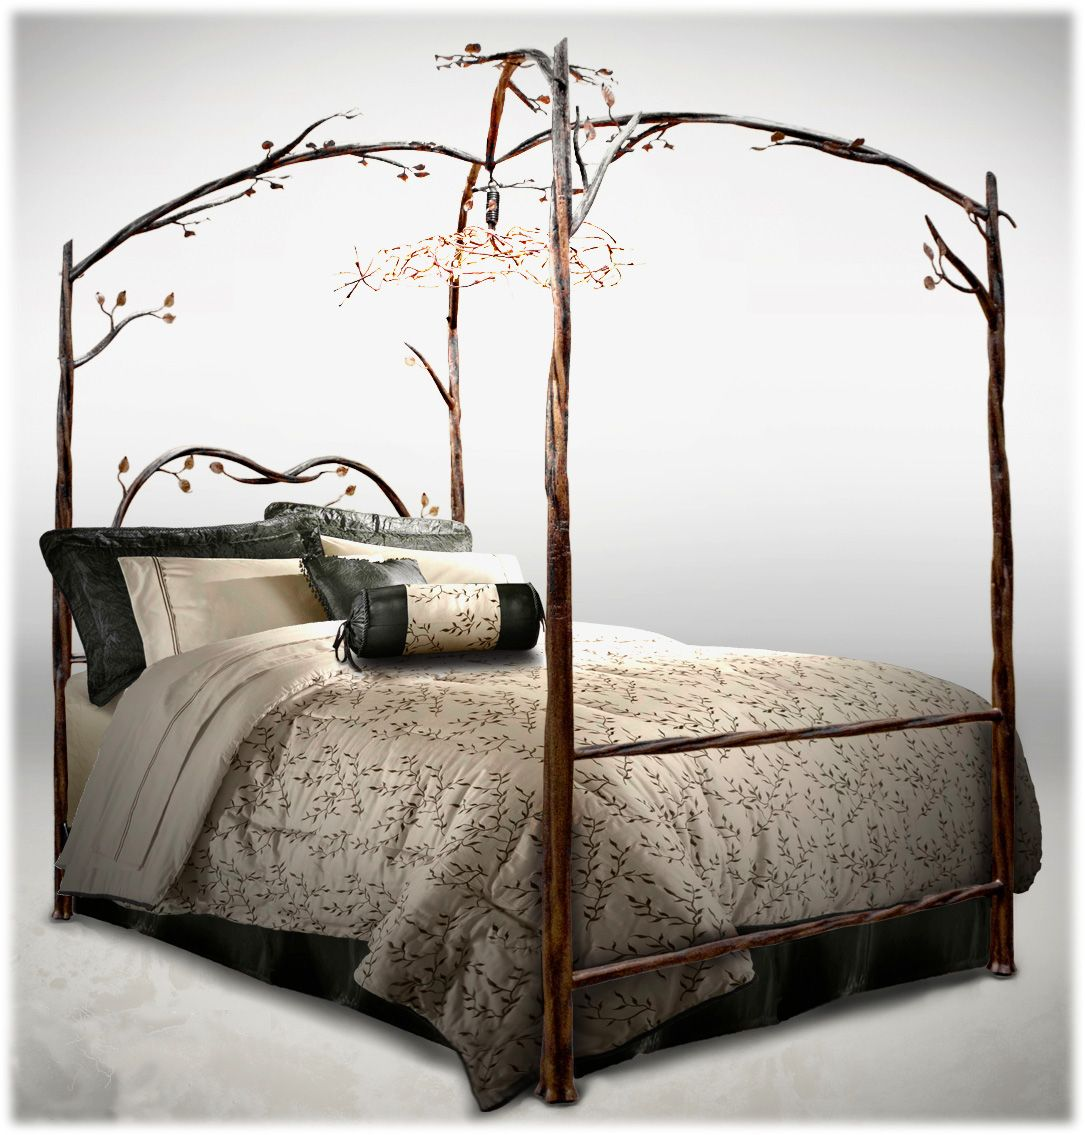 Delazious Wrought Iron Canopy Bed With Detailed Iron Branches